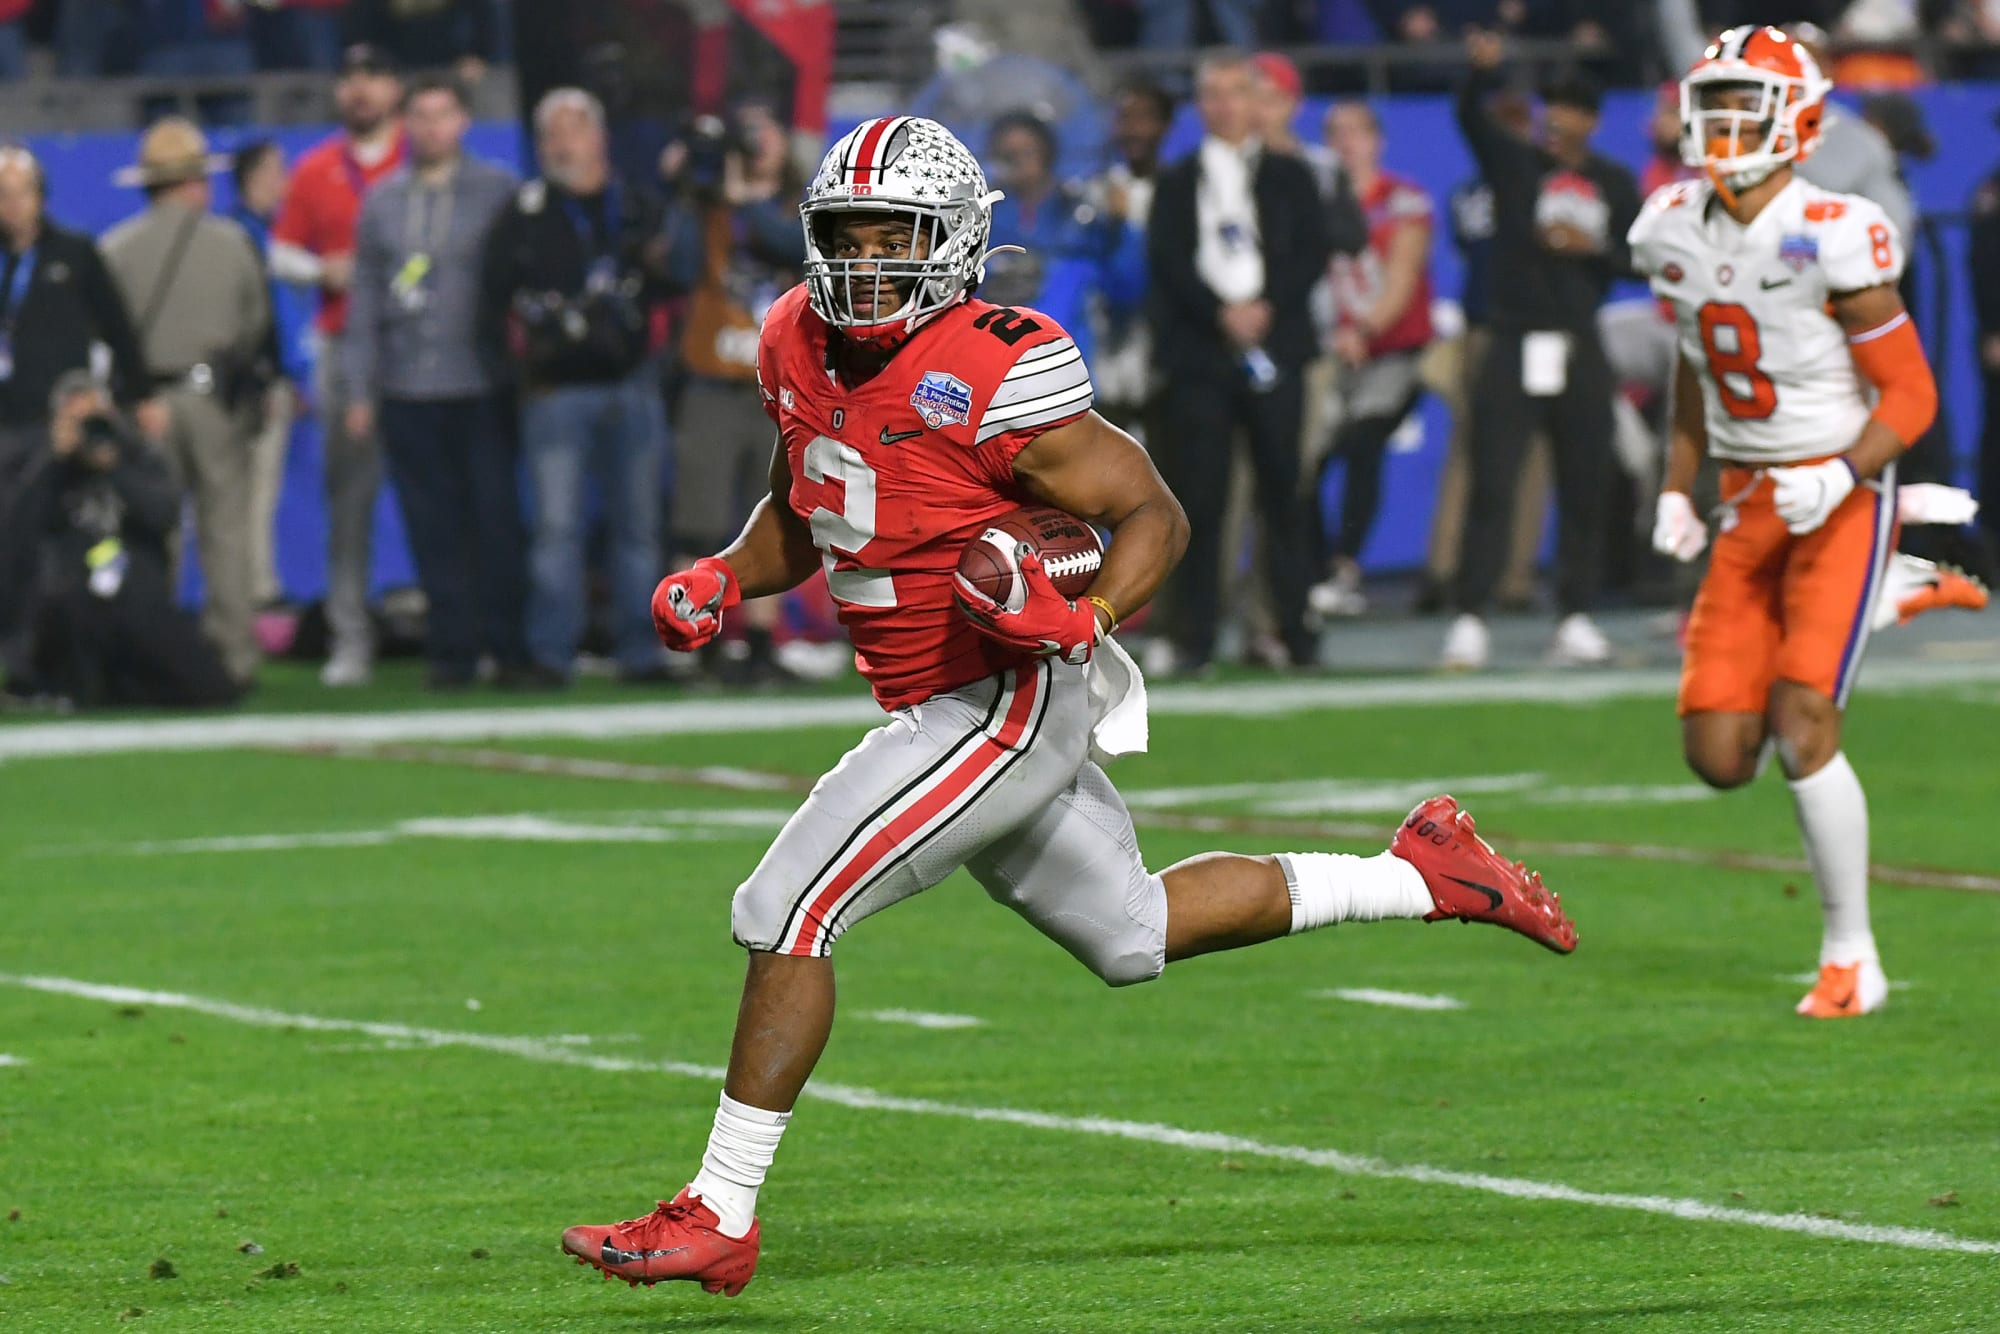 Ohio State Football: Buckeyes come up short in Fiesta Bowl ...